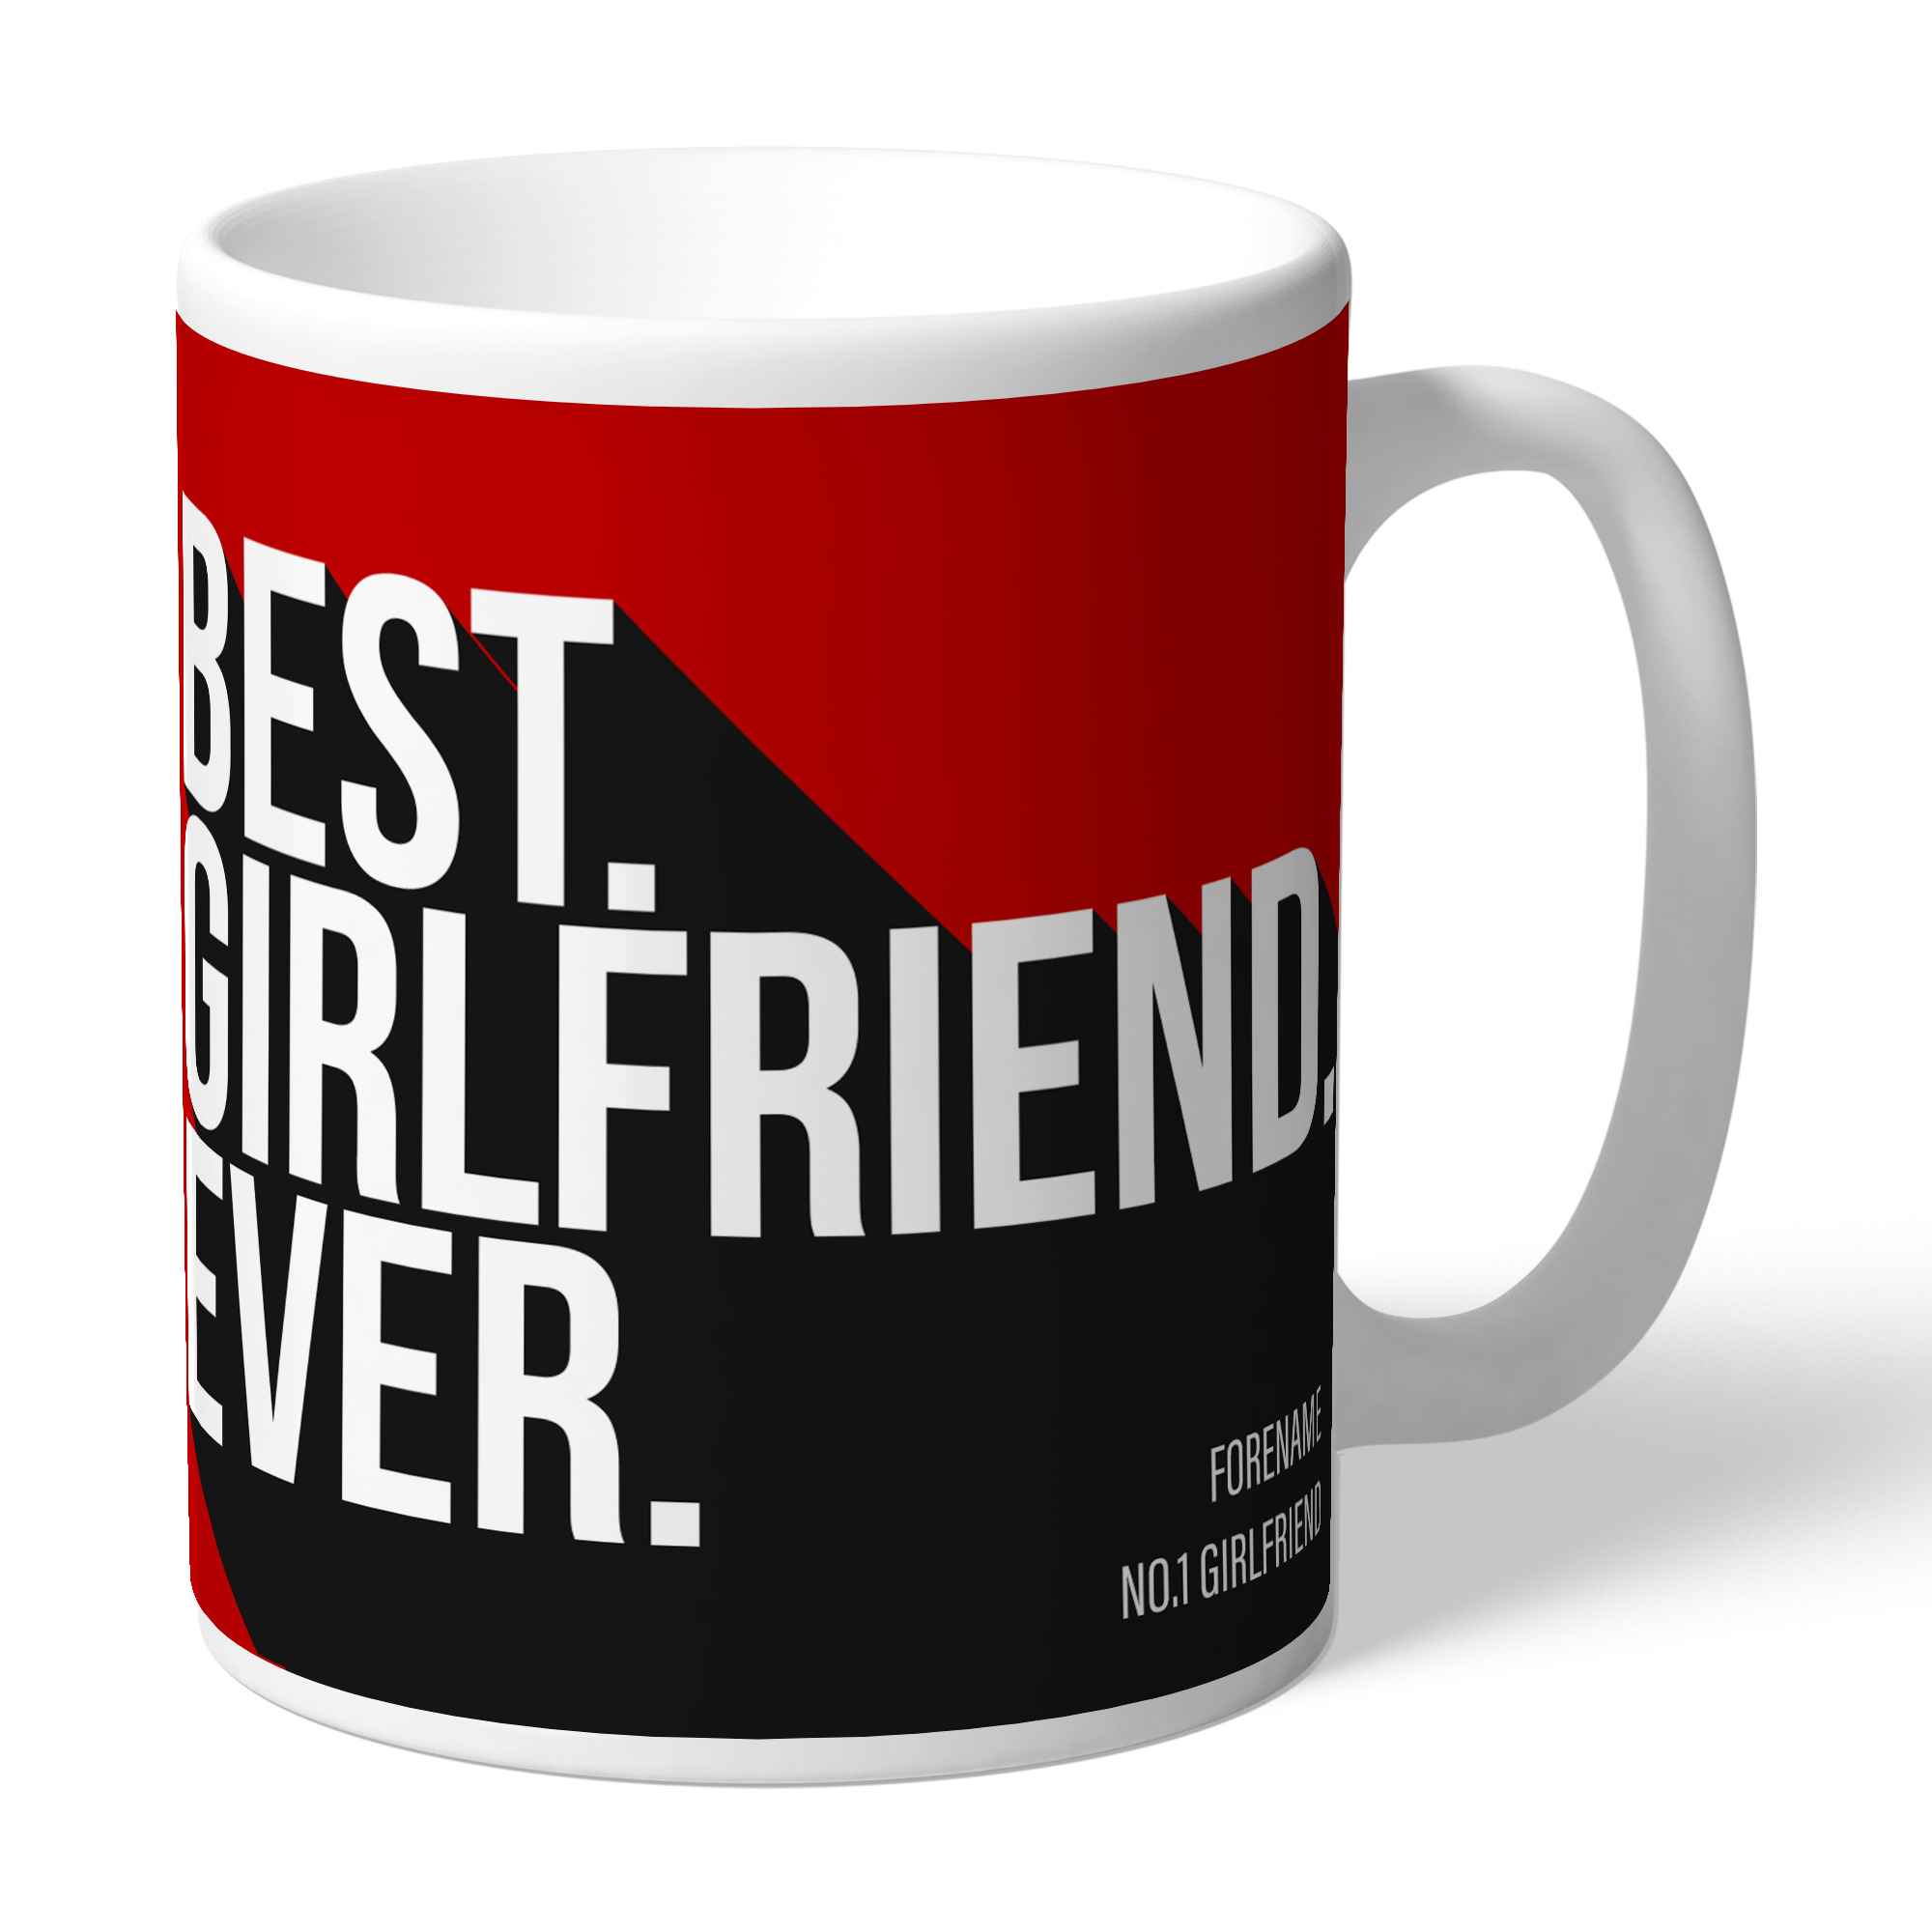 Brentford Best Girlfriend Ever Mug